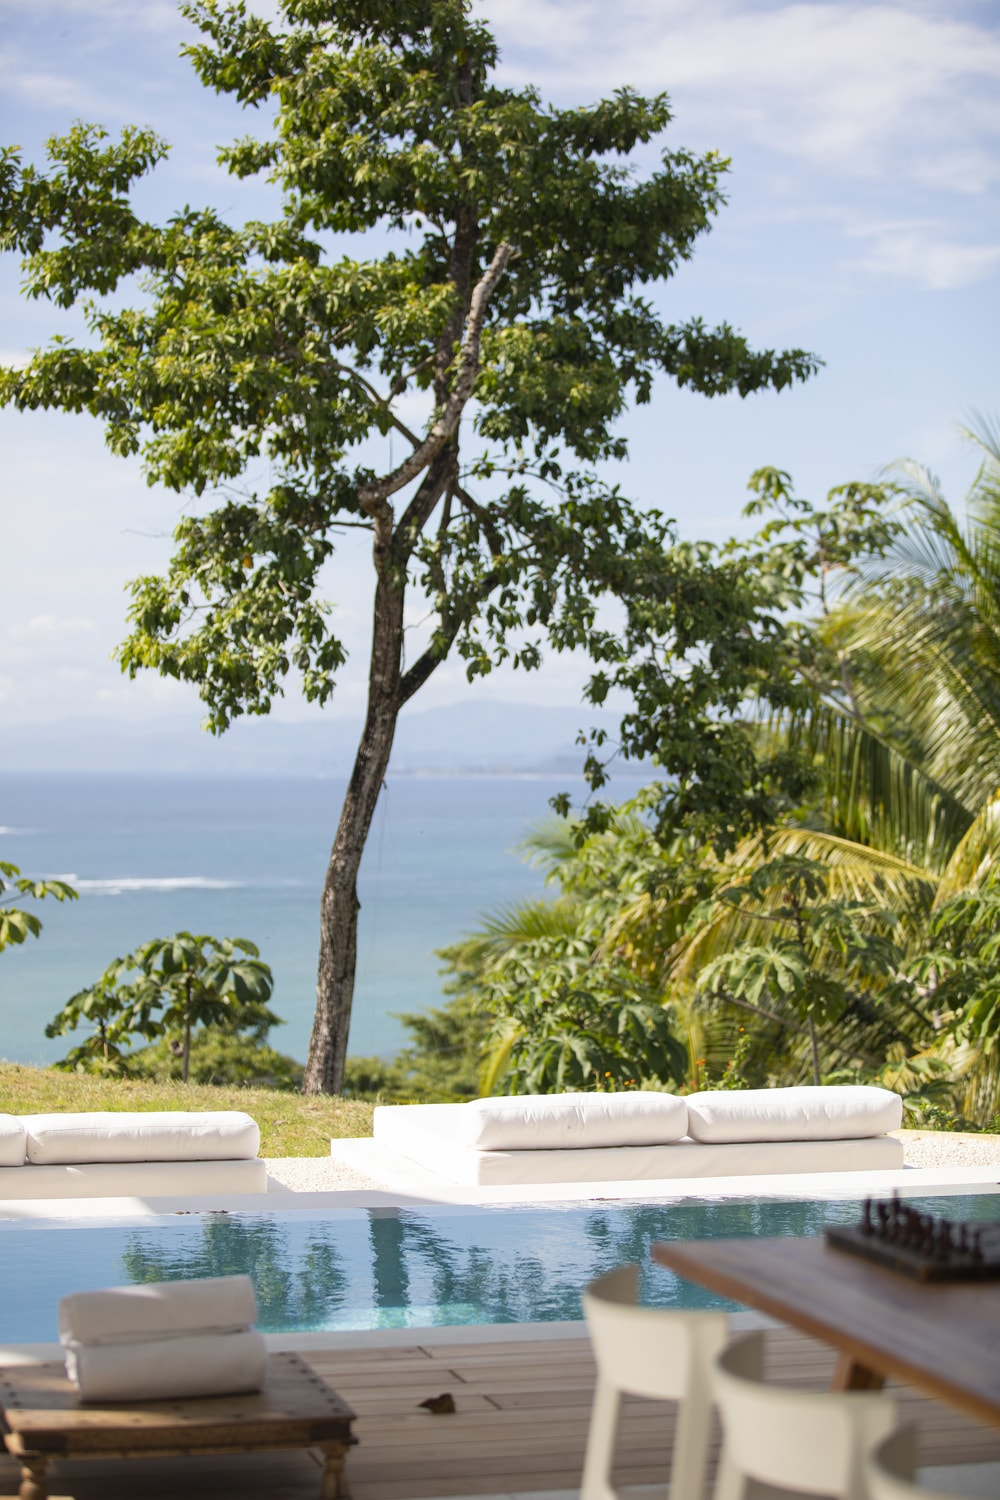 This is a closer look at the view across from the daybeds of the pool with tall tree, shrubs and overlooking views of the sea.